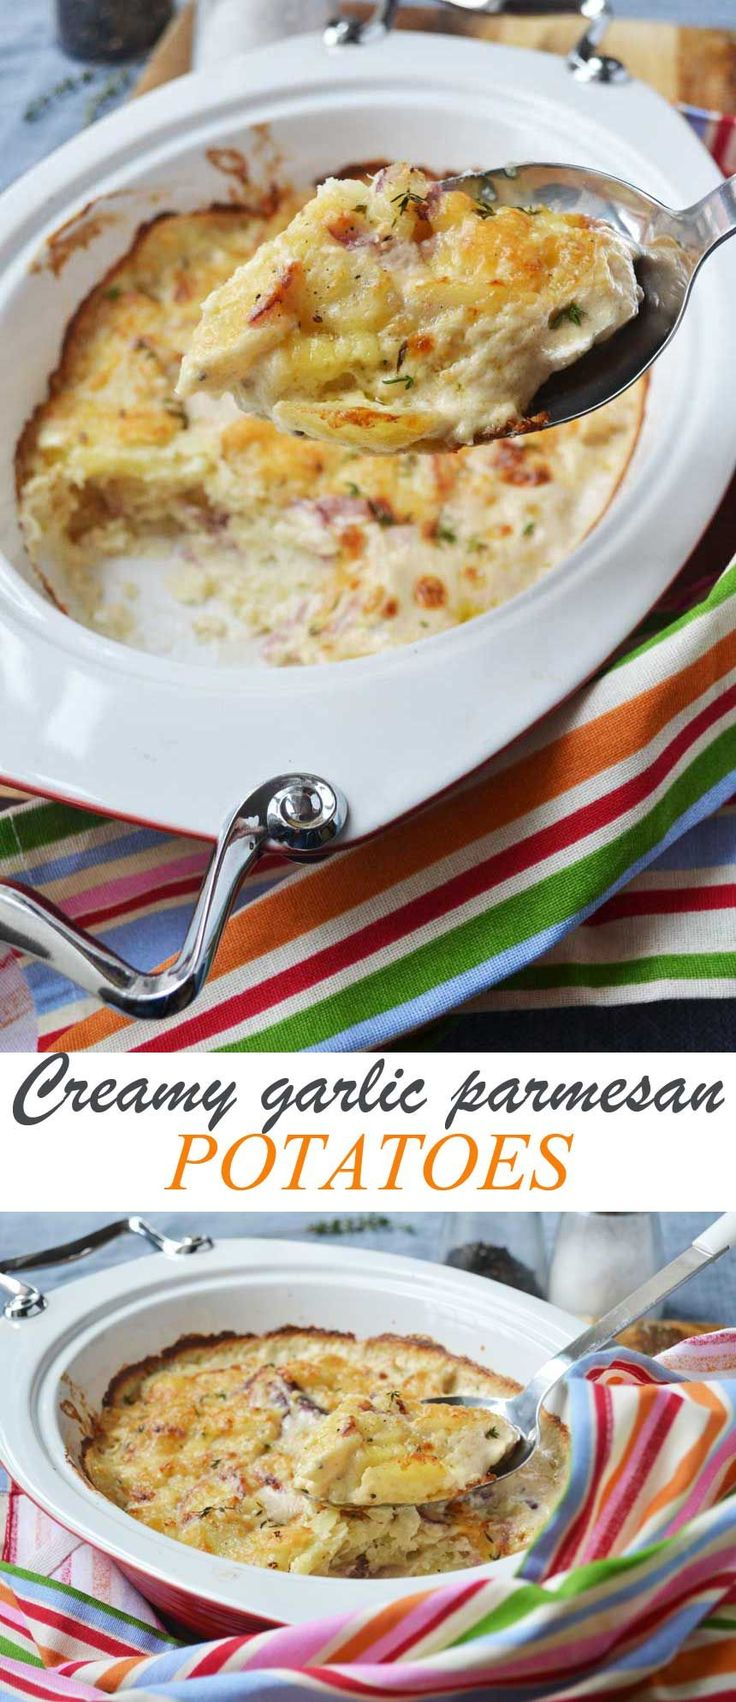 Creamy garlic parmesan potatoes (dauphinoise potatoes)